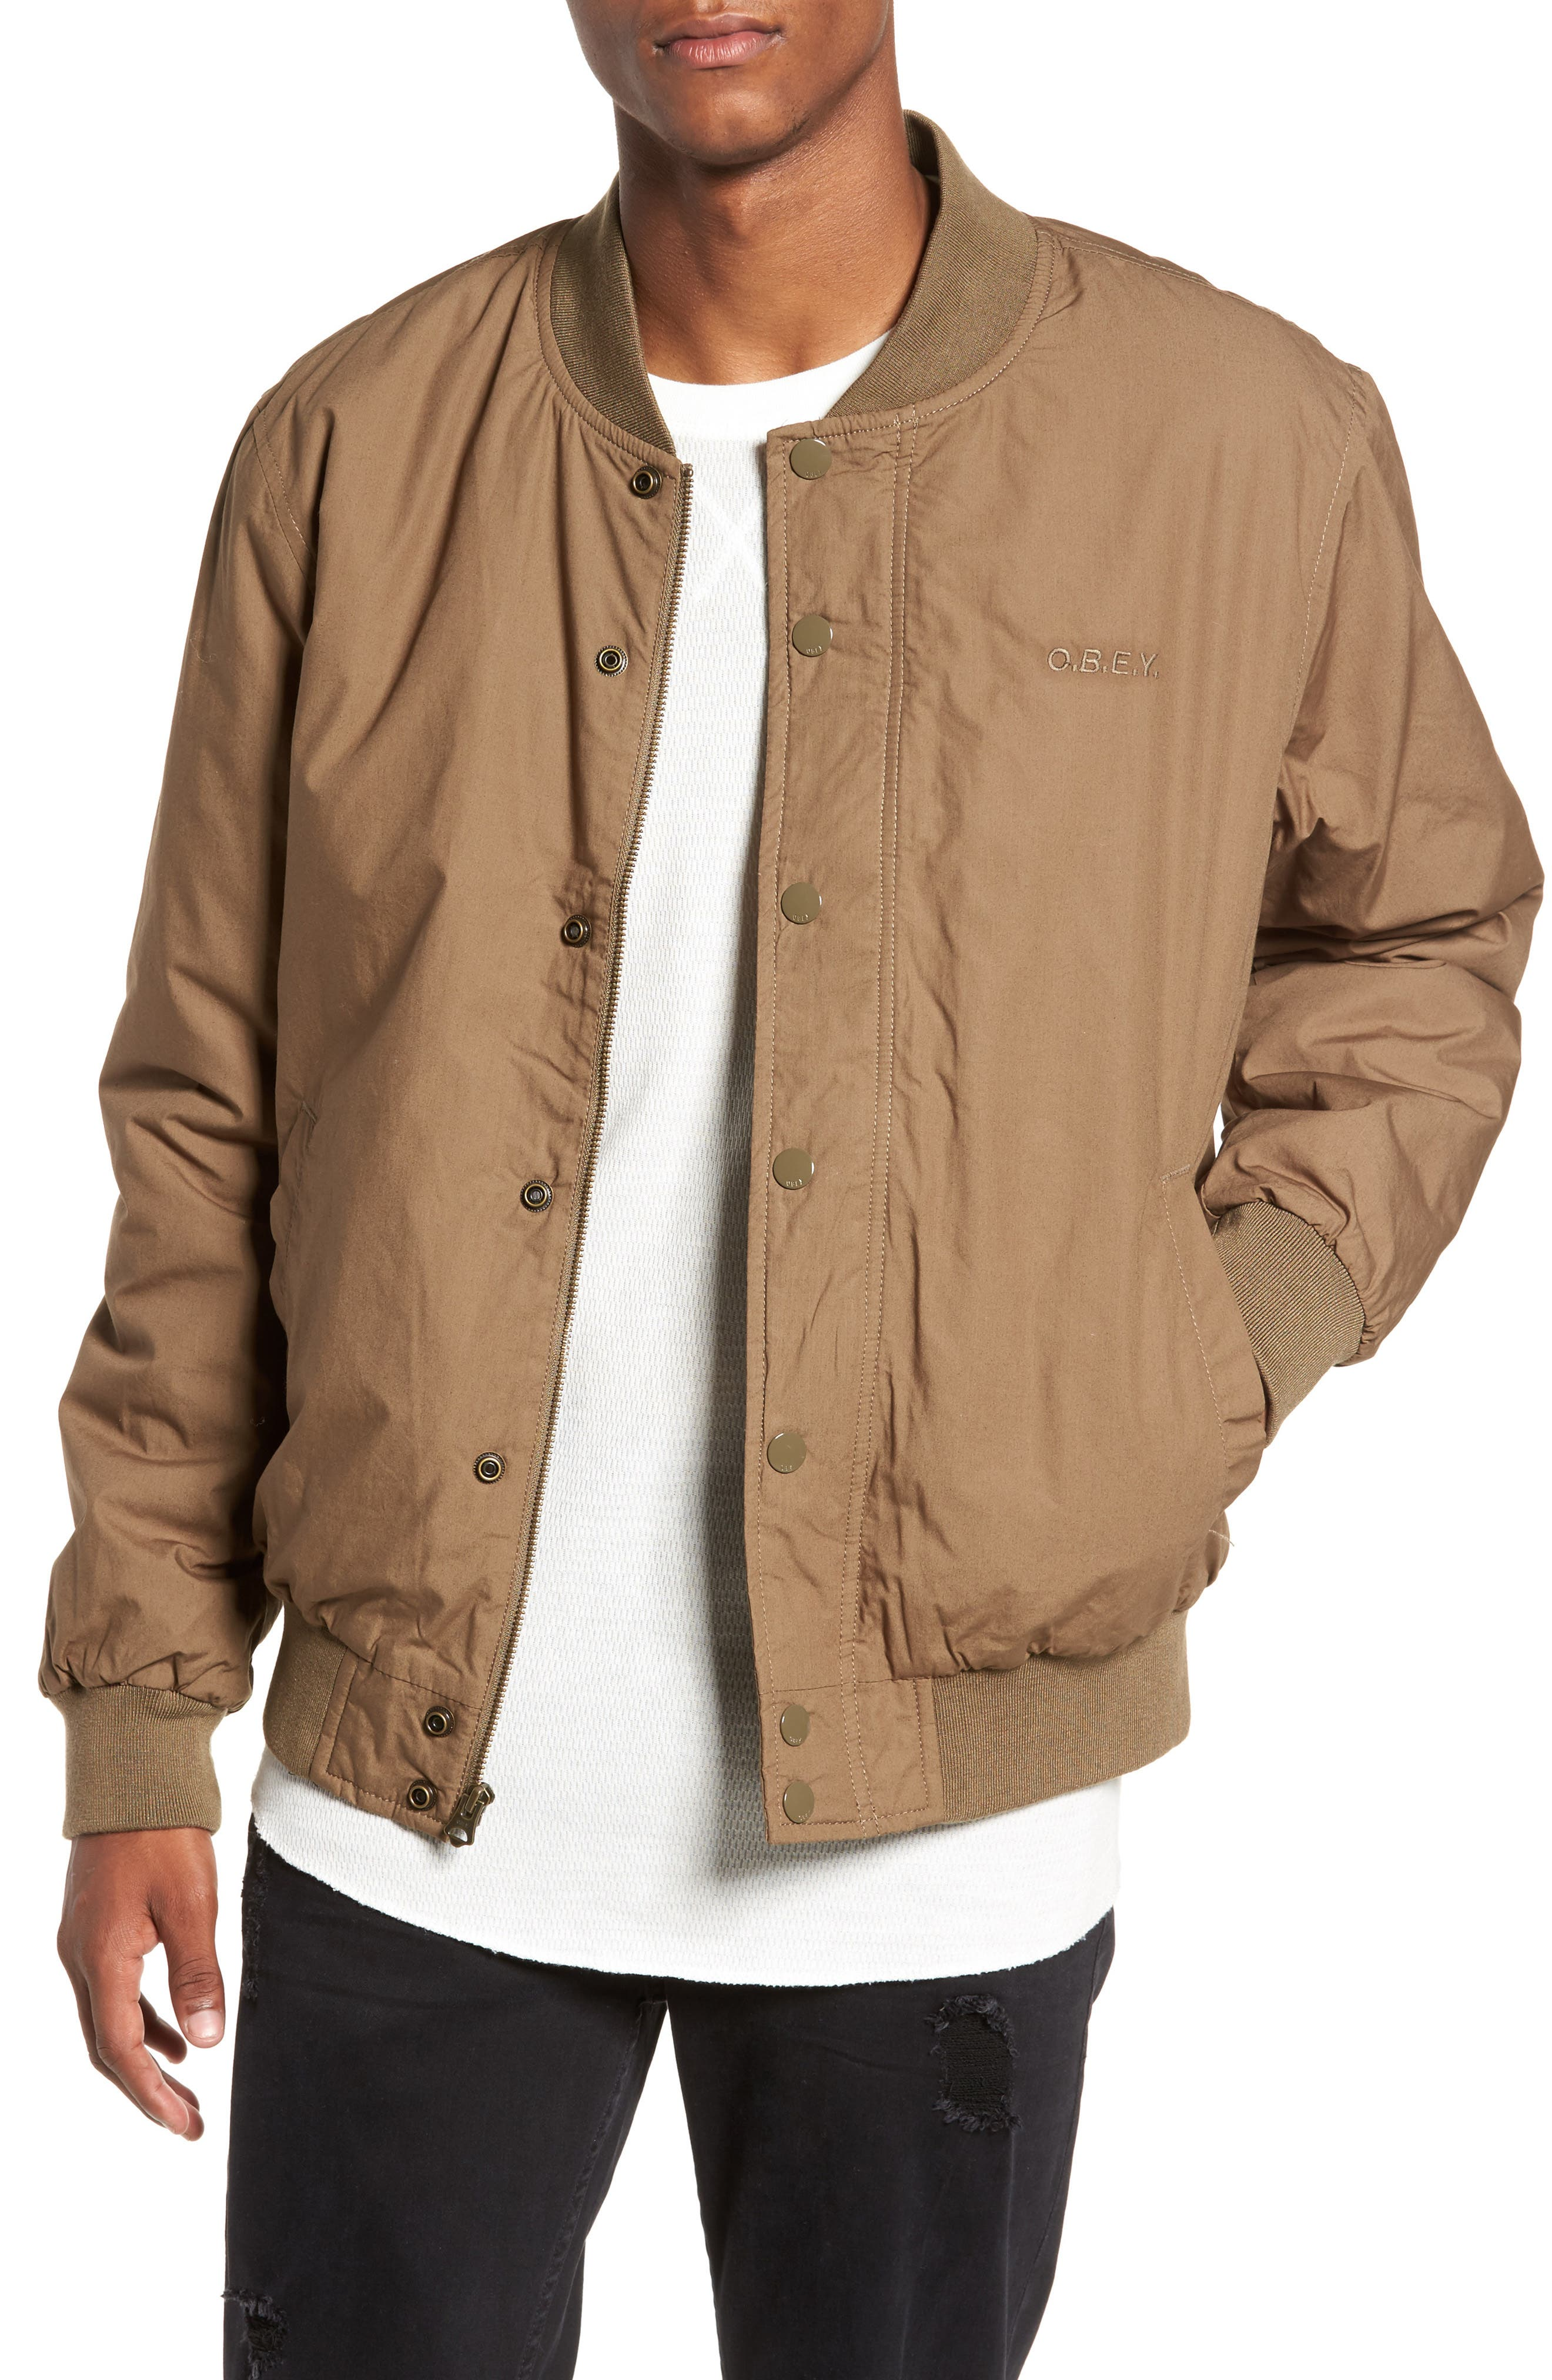 Obey Ranks Bomber Jacket